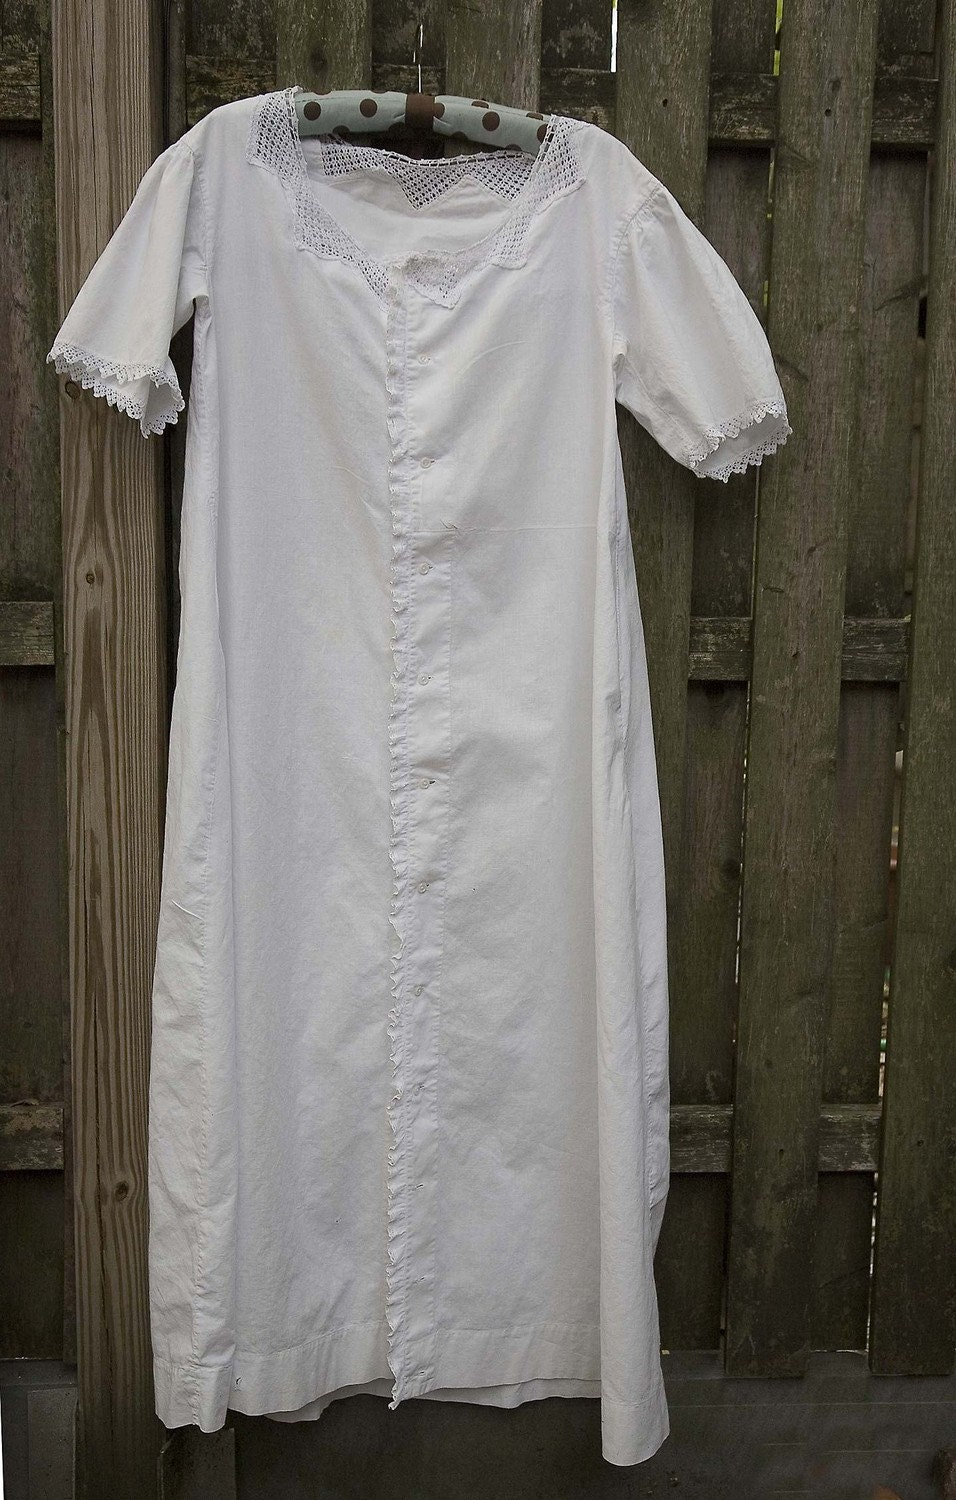 Vintage White Cotton Nightgowns And Dress